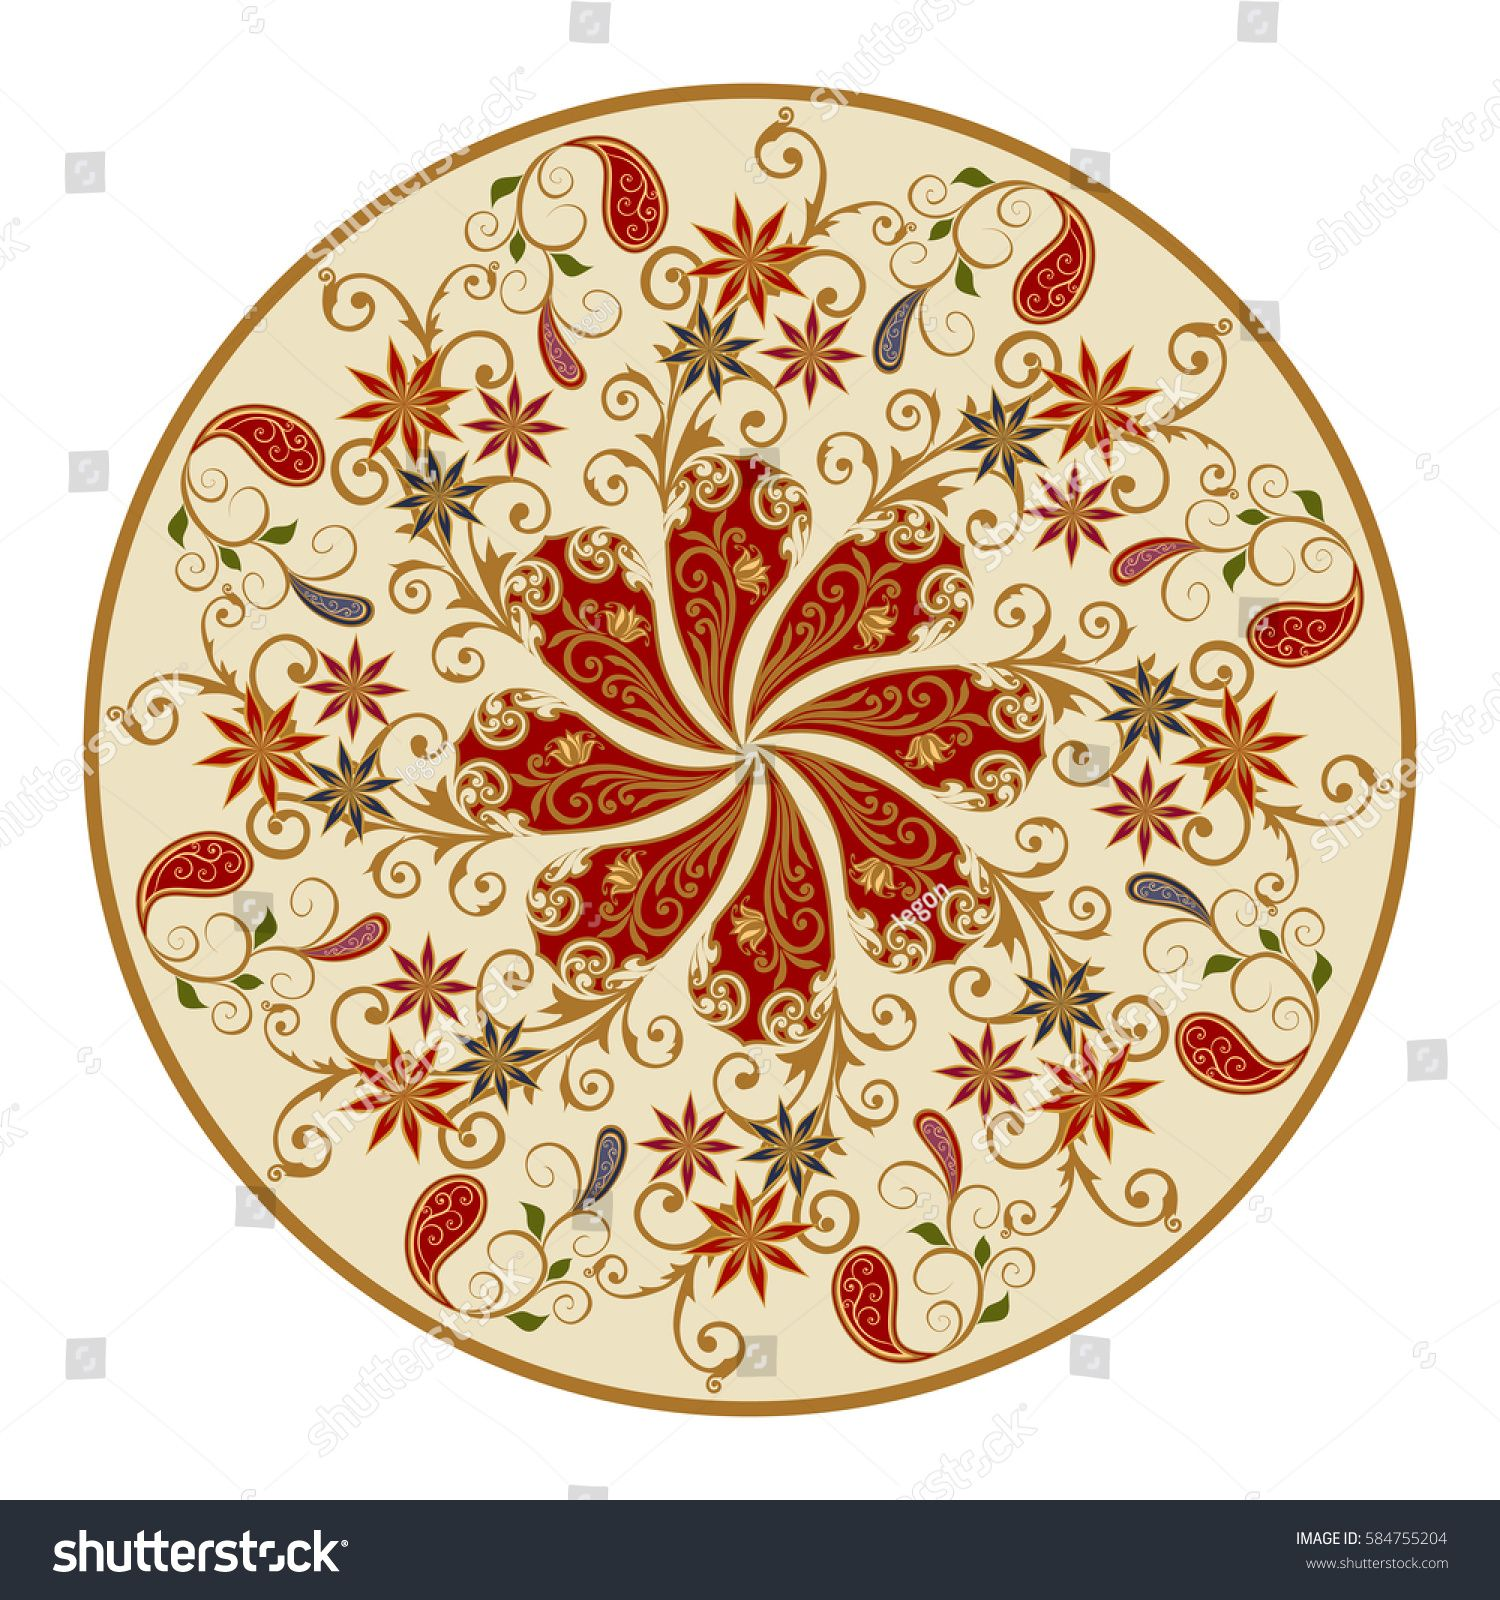 Decorative floral ornament in east style mandala vector design